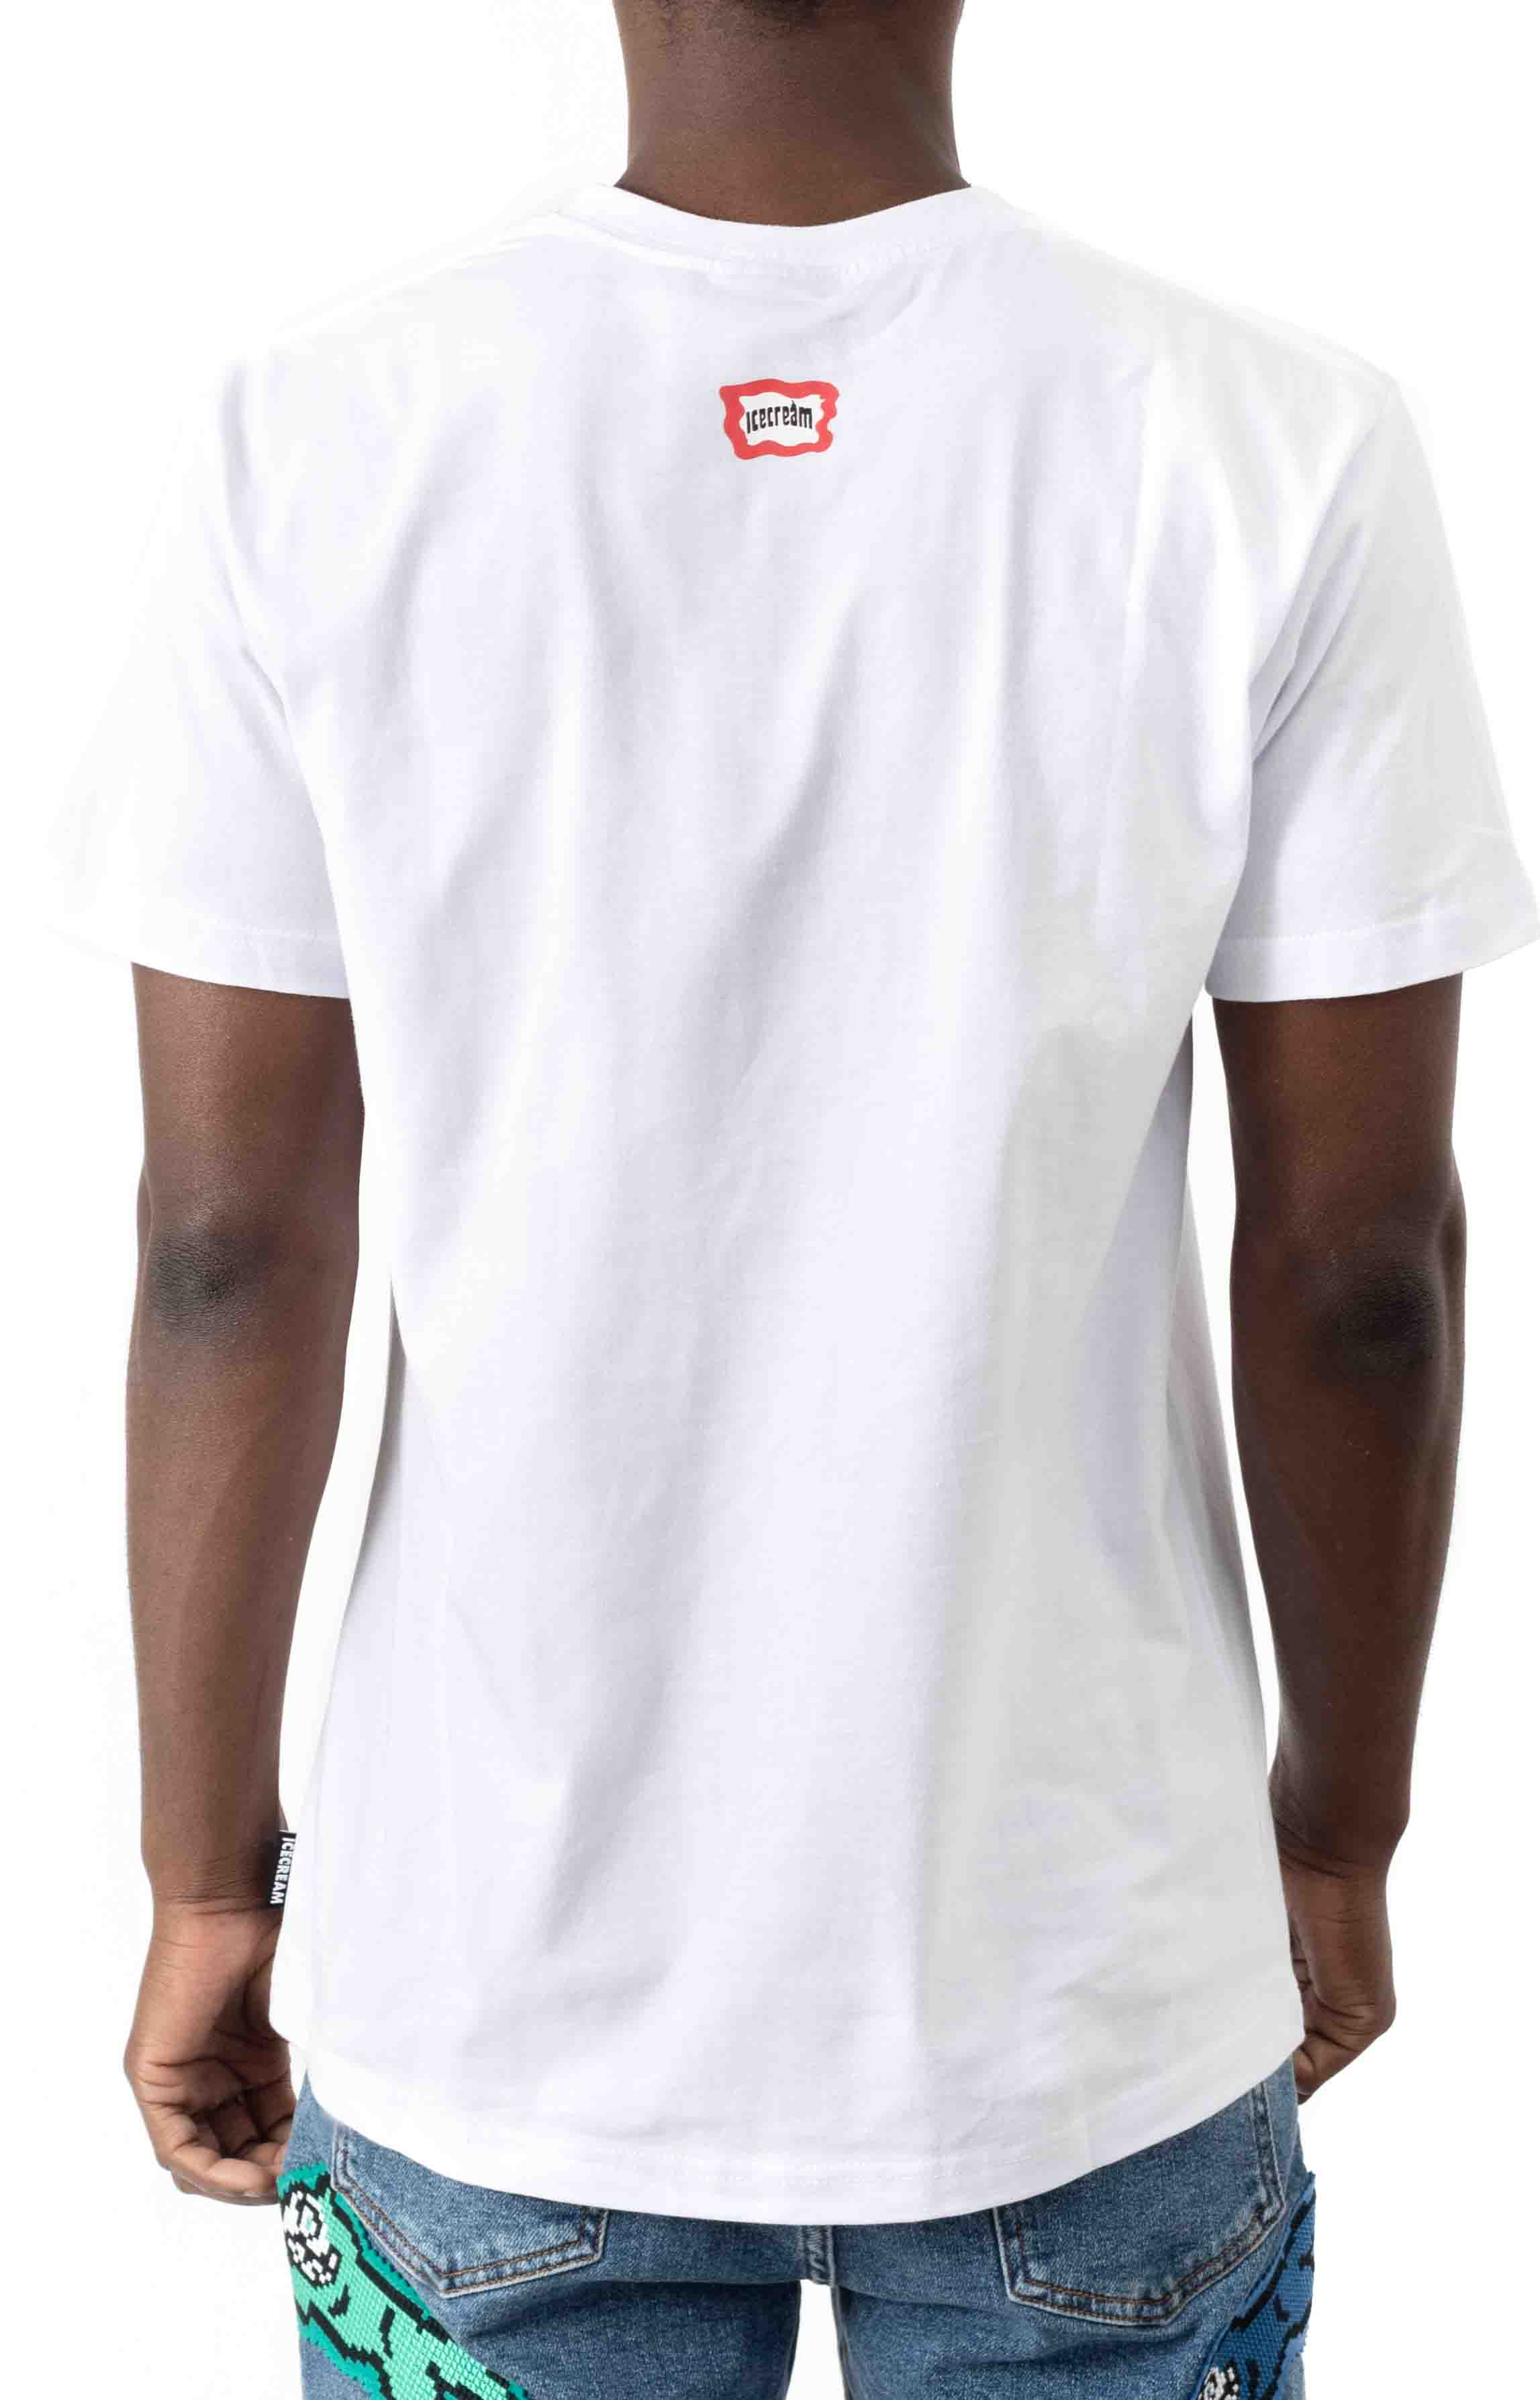 Don't Fear The Reaper T-Shirt - White  3